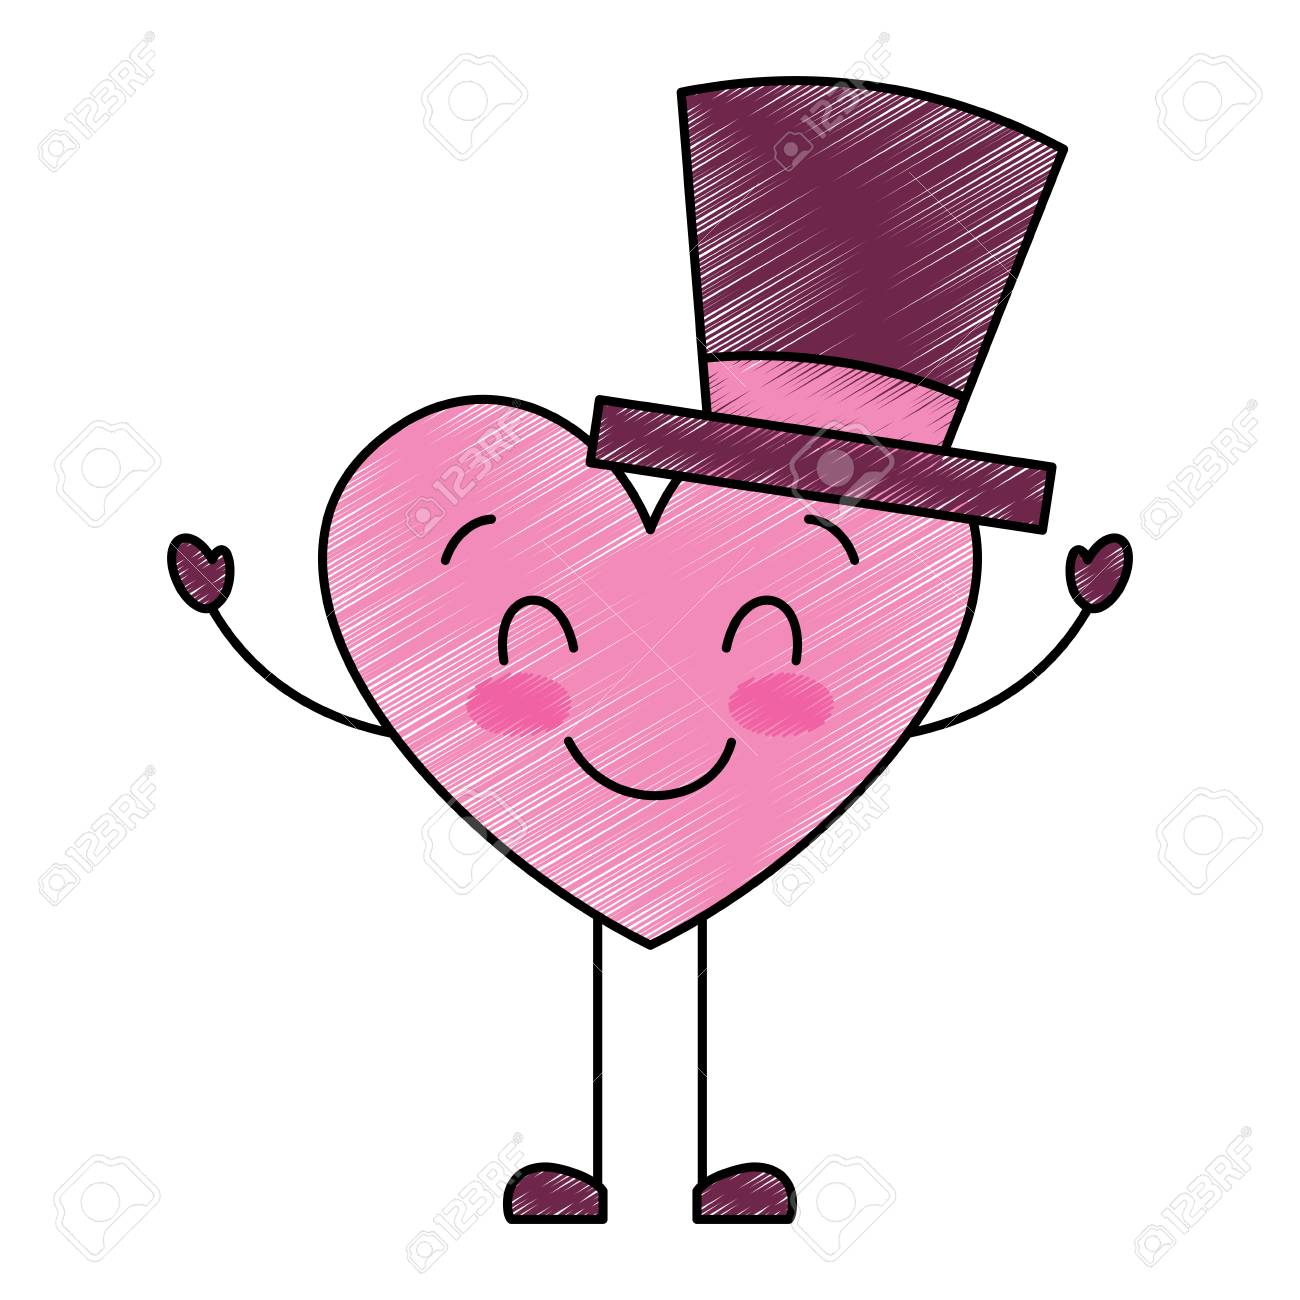 Cute Cartoon Heart In Love Wearing Top Hat Romantic Vector Illustration Royalty Free Cliparts Vectors And Stock Illustration Image 95713551